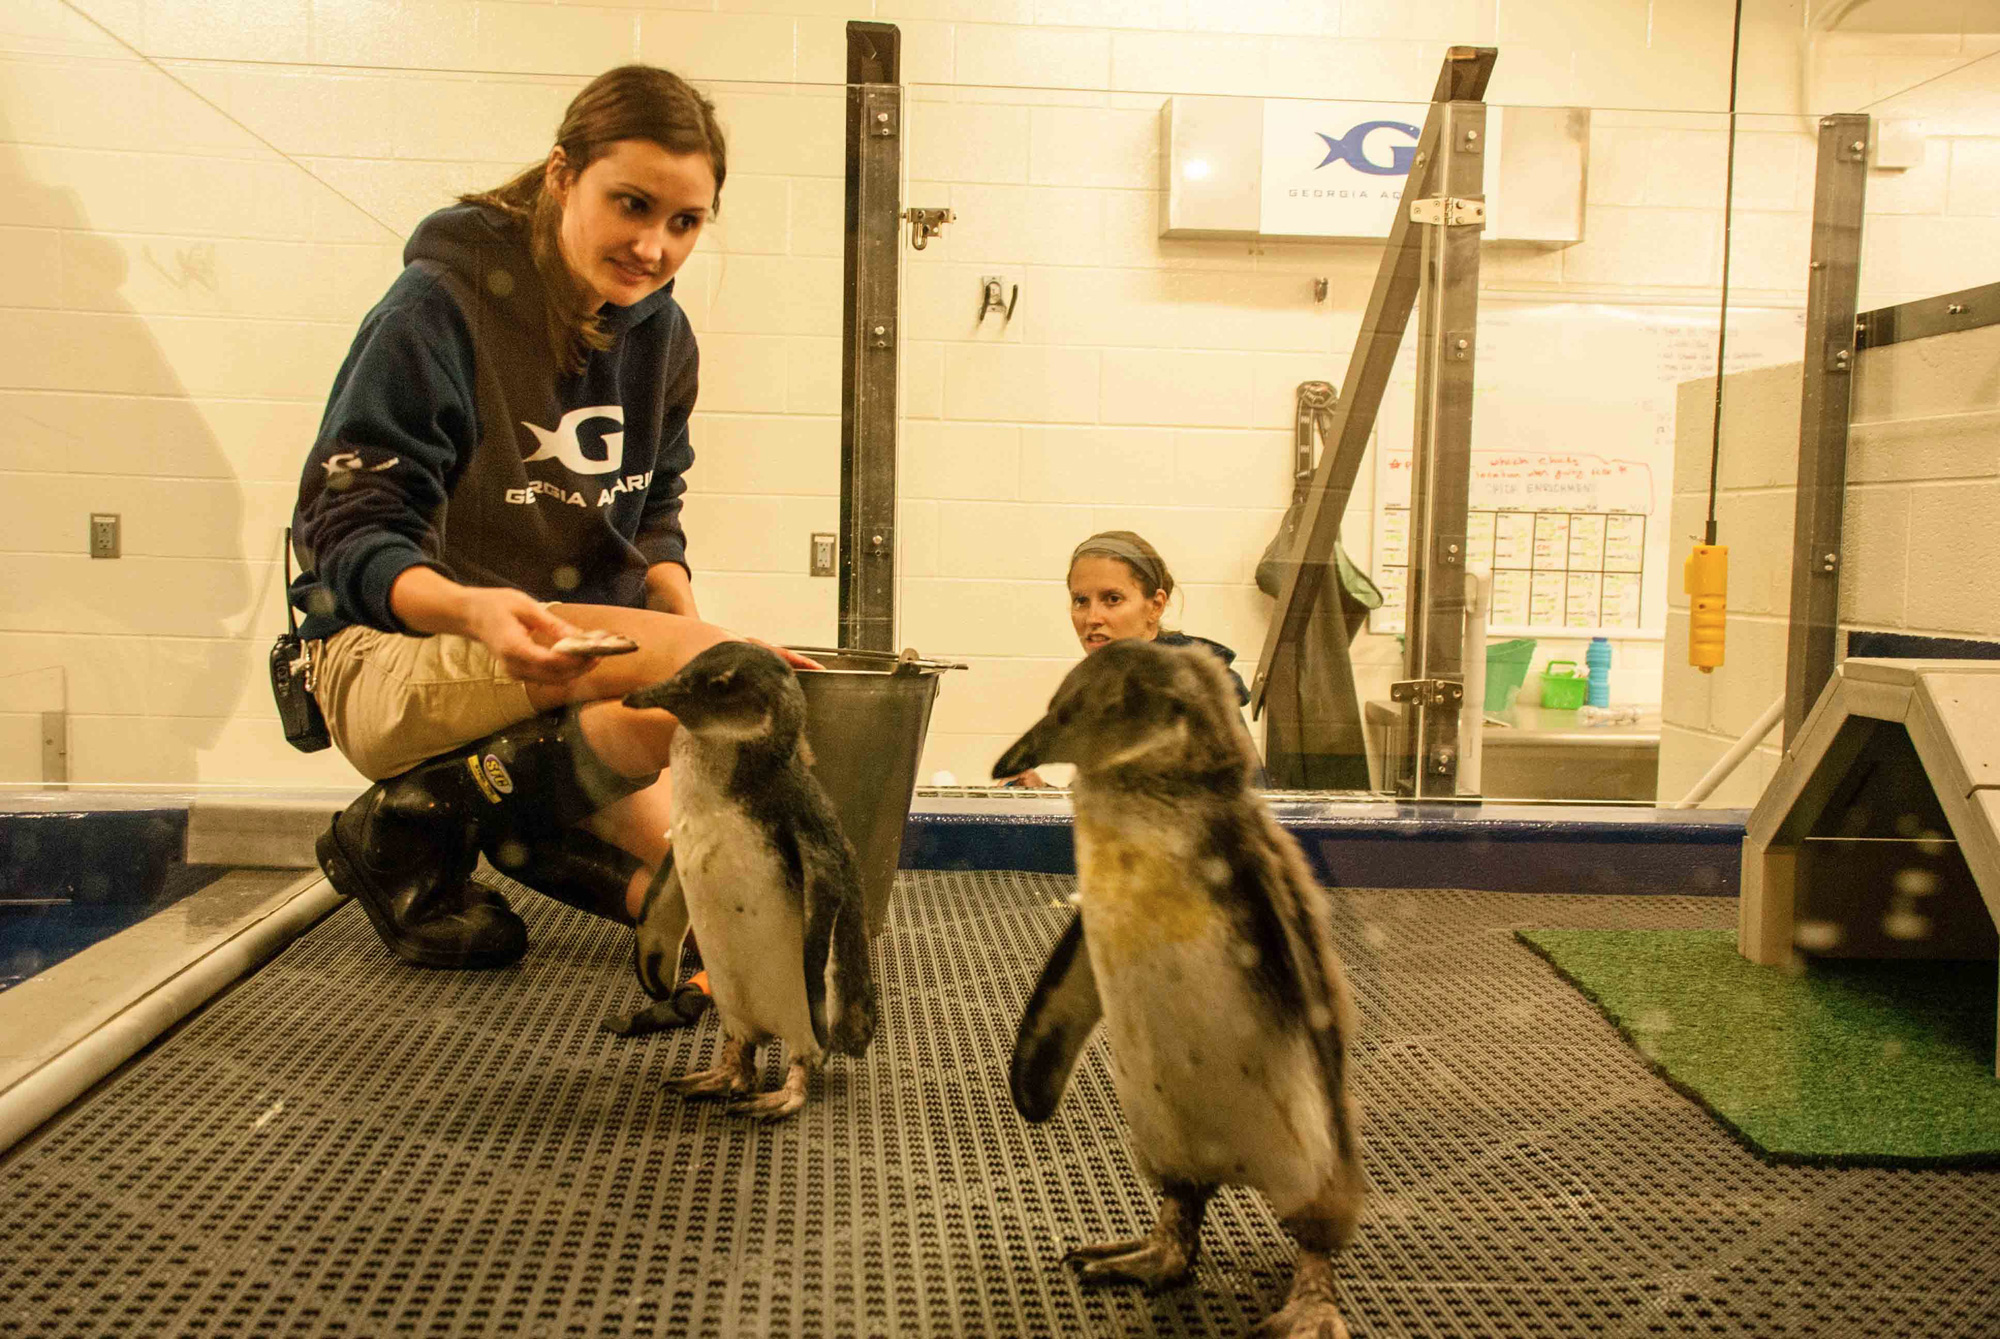 Take a Behind the Scenes tour of the Georgia Aquarium to see how the animals are fed